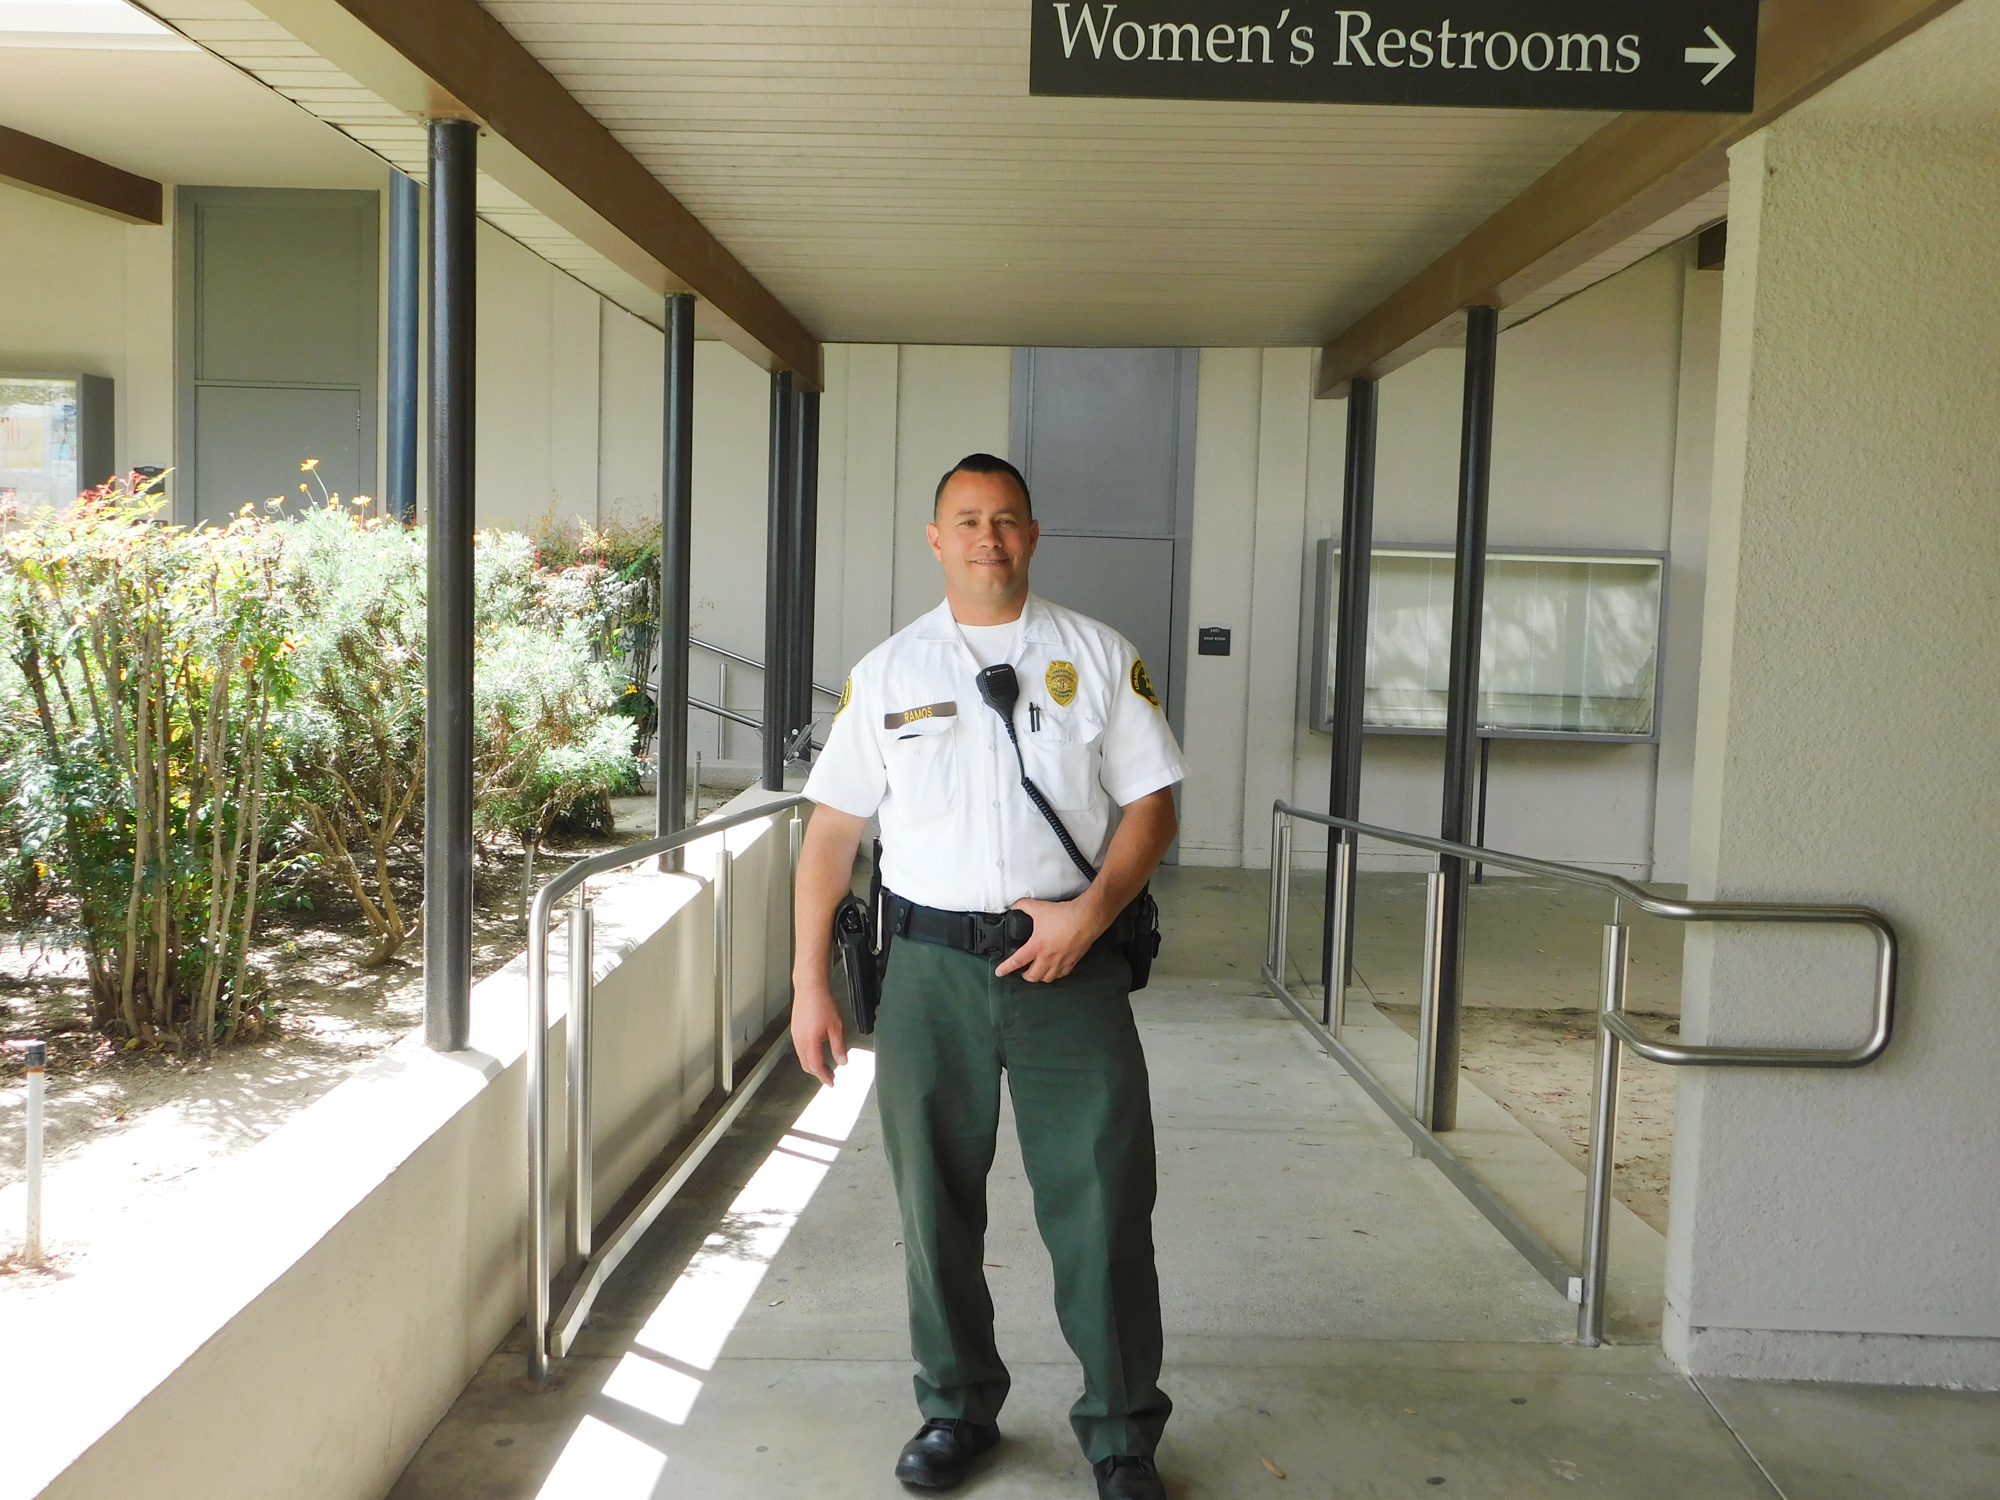 BRIEF: Graffiti in women's restroom - The Roundup News